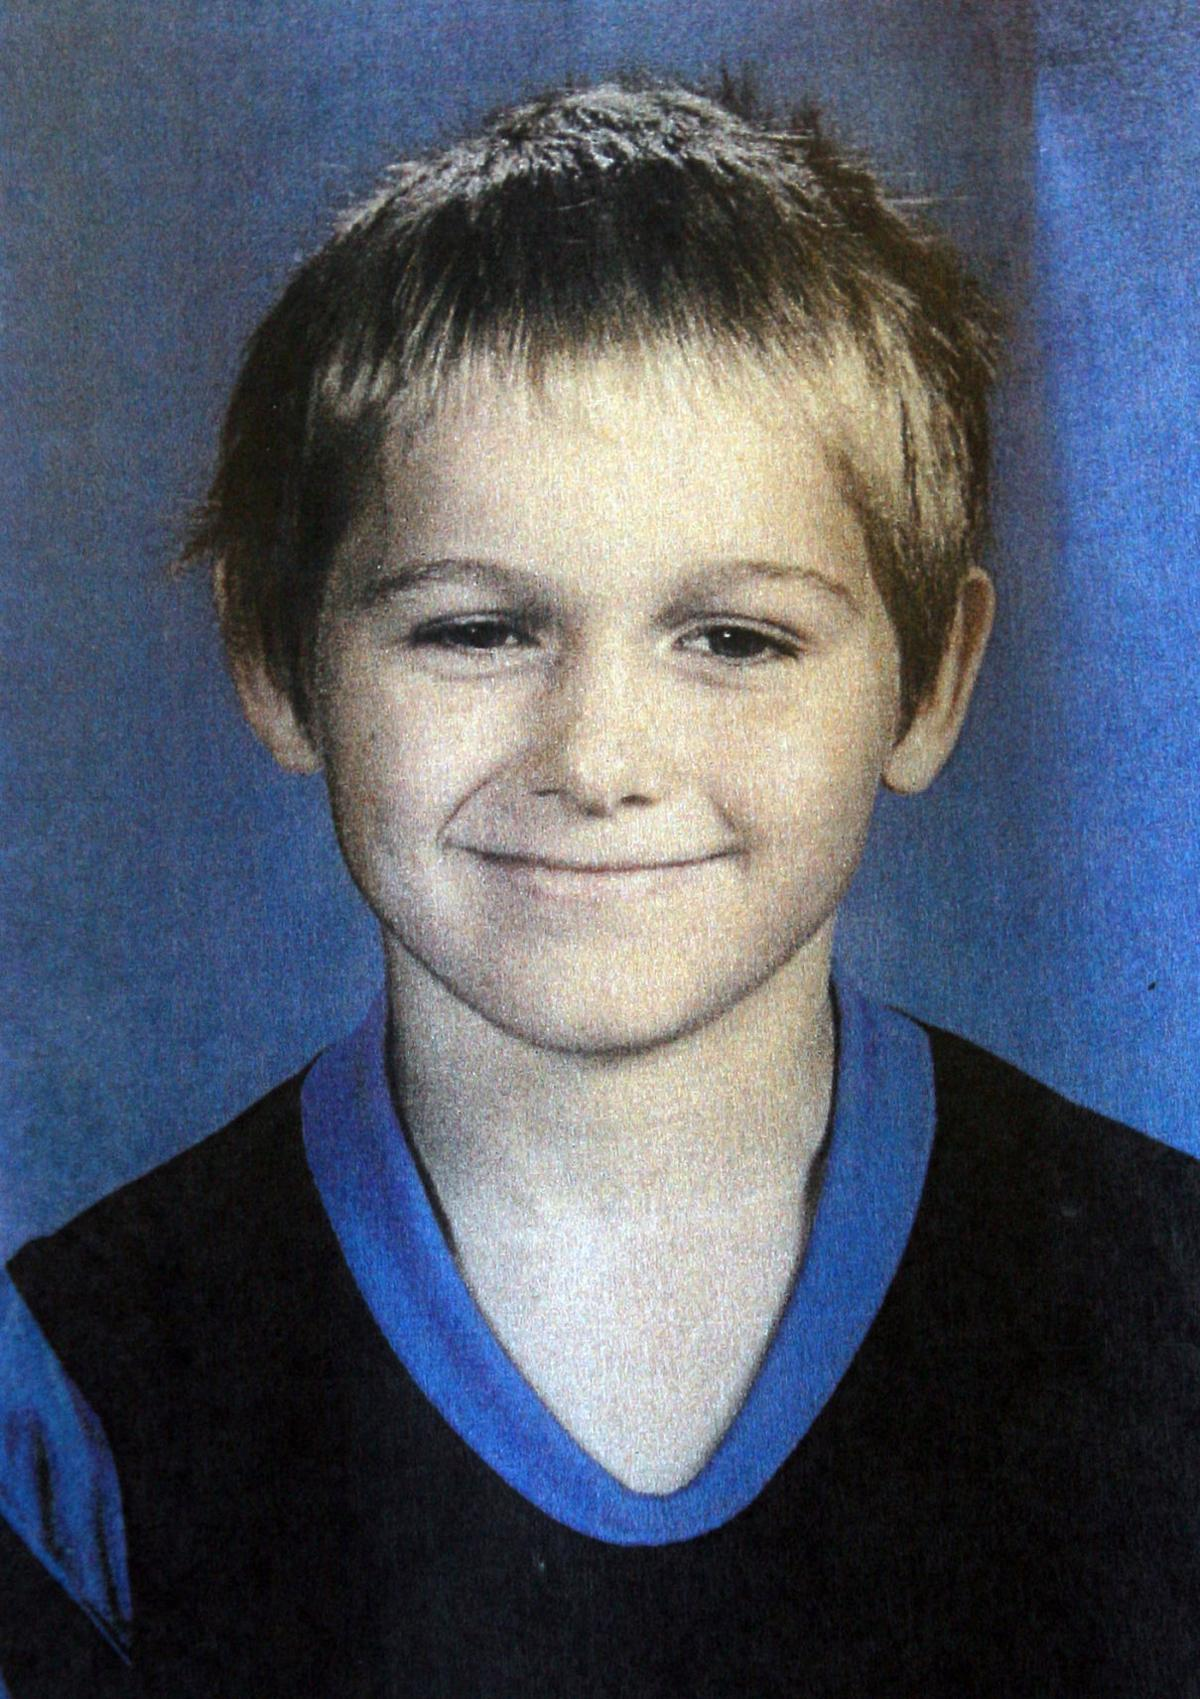 TRUE CRIME: Thirteen-year-old Christian Choate disappeared in 2009